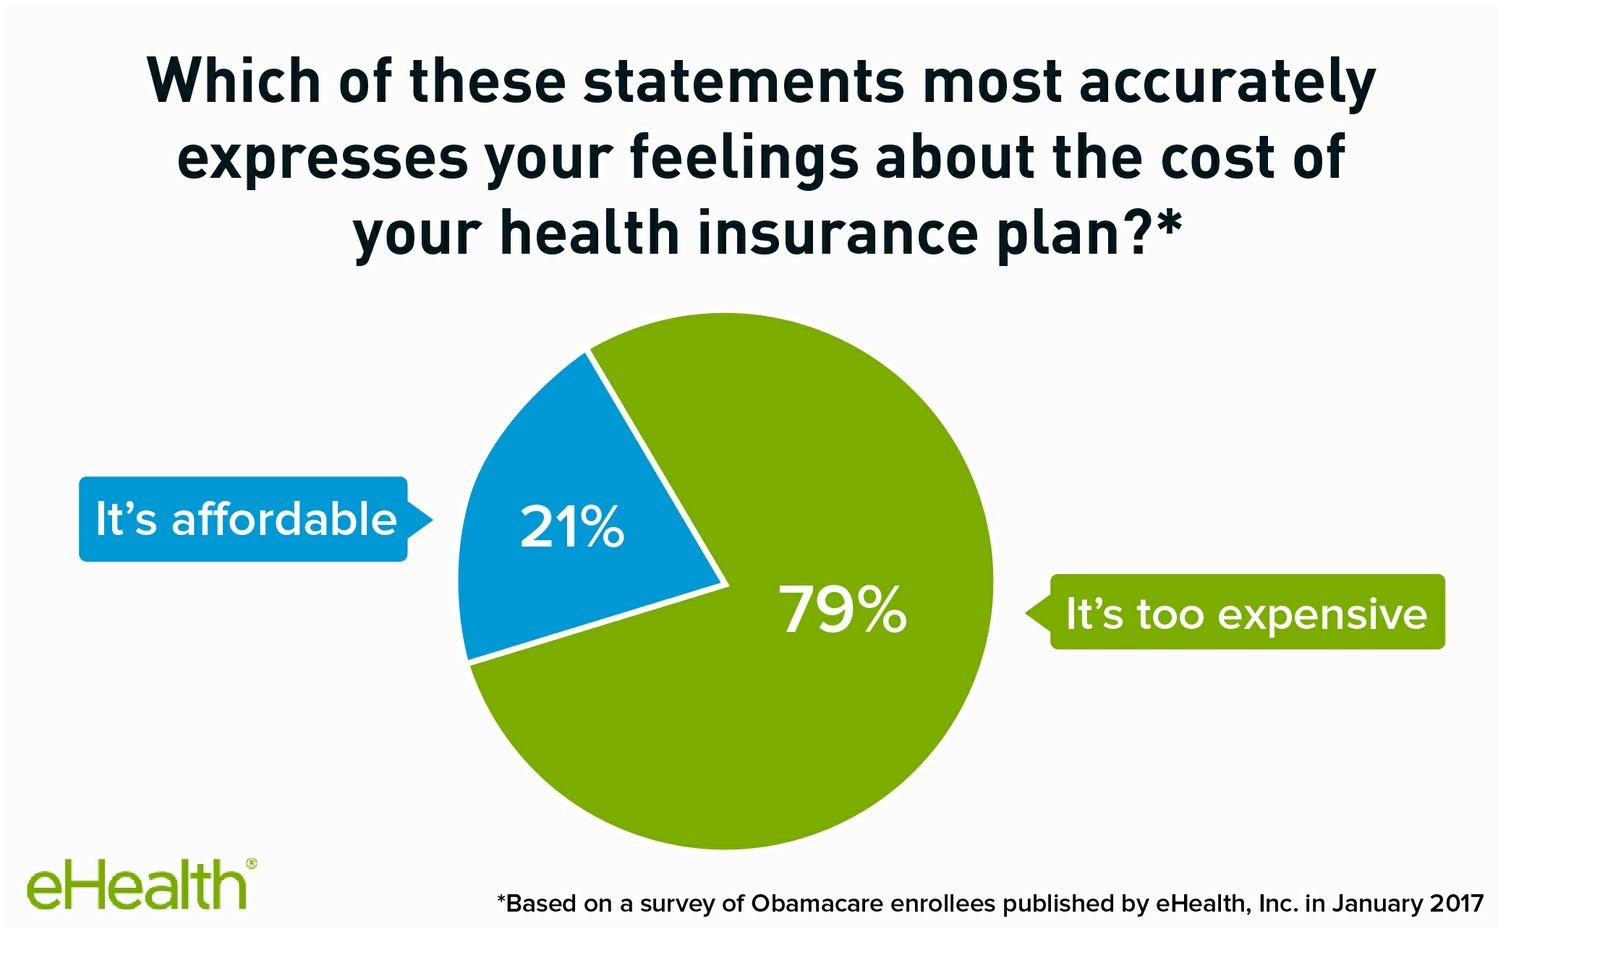 79% of Obamacare enrollees say coverage is too expensive.